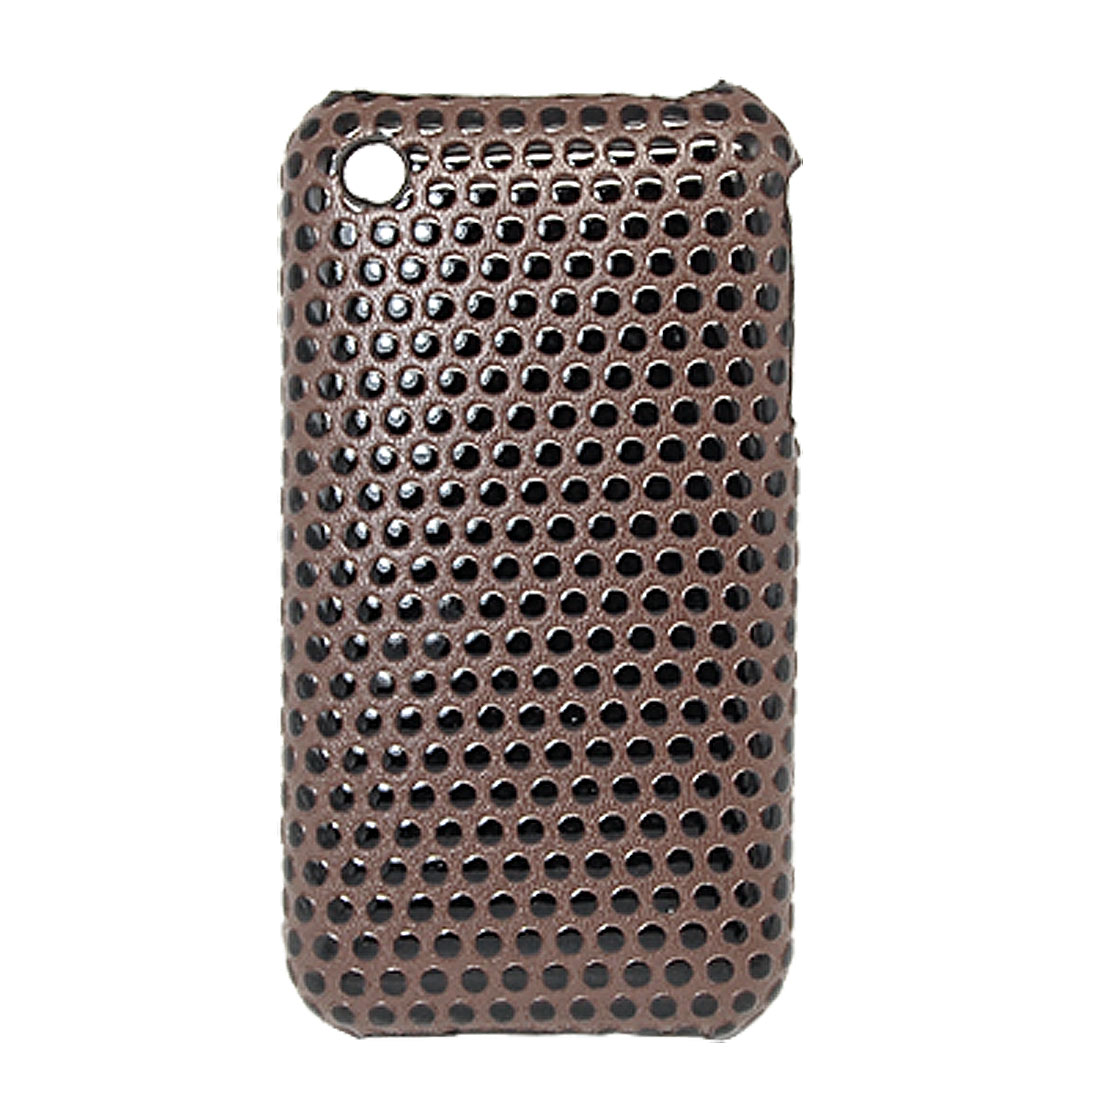 Dots Design Hard Plastic Case Cover Brown for Apple iPhone 3G